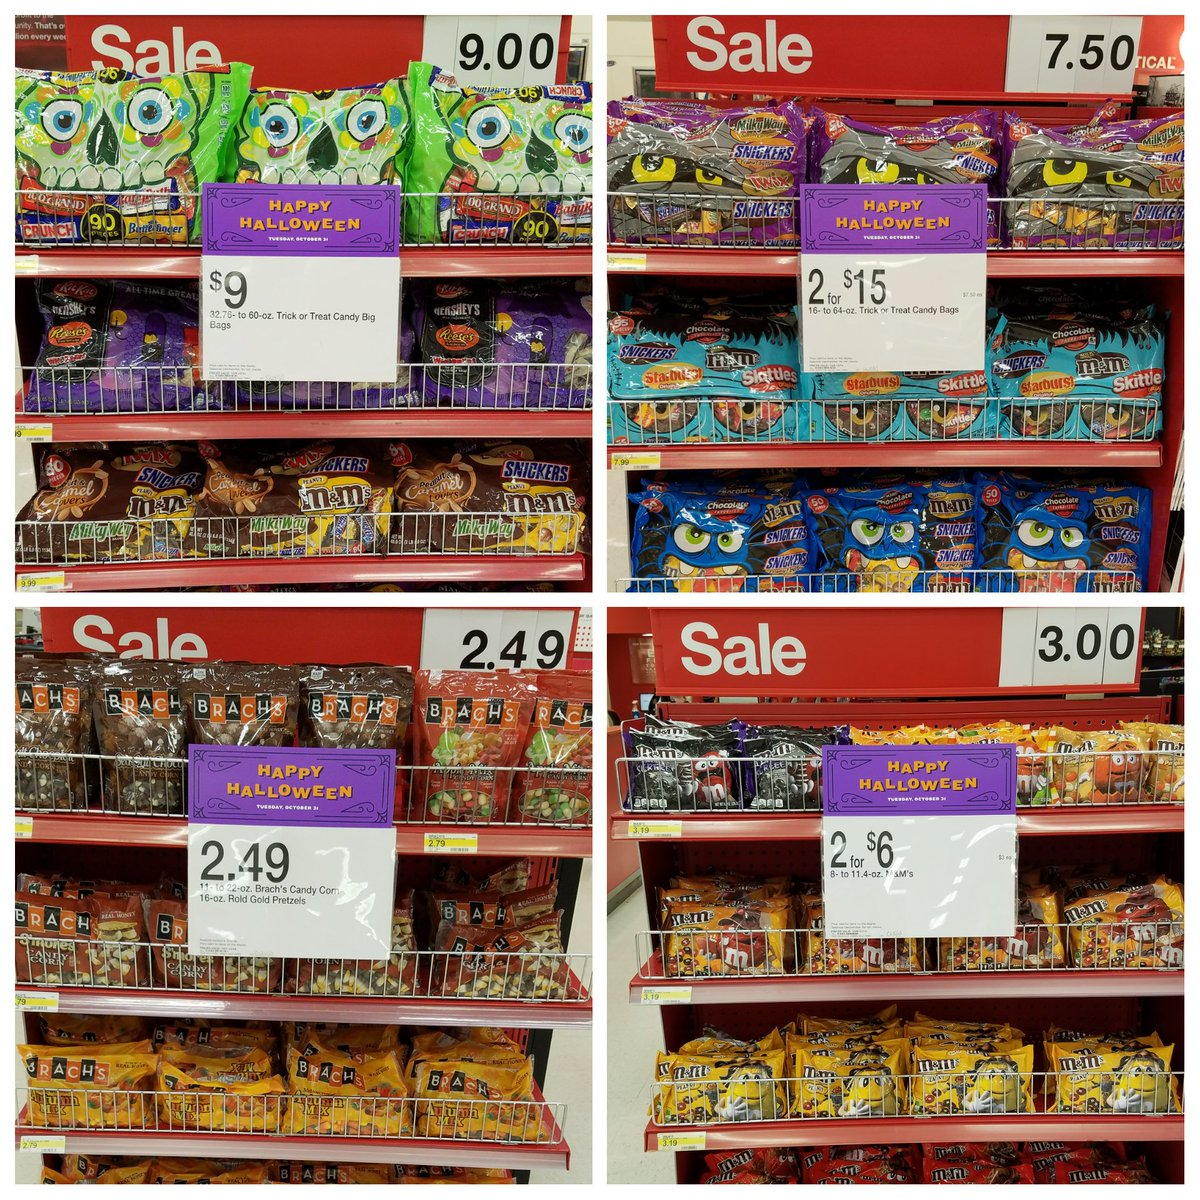 Bubble, Bubble, Toil and Trouble, With Deals this good, you can get double! Our lanes are your 1 stop shop!! #T2320ModelStore #D303 #G392  <br>http://pic.twitter.com/mczkGfoWan